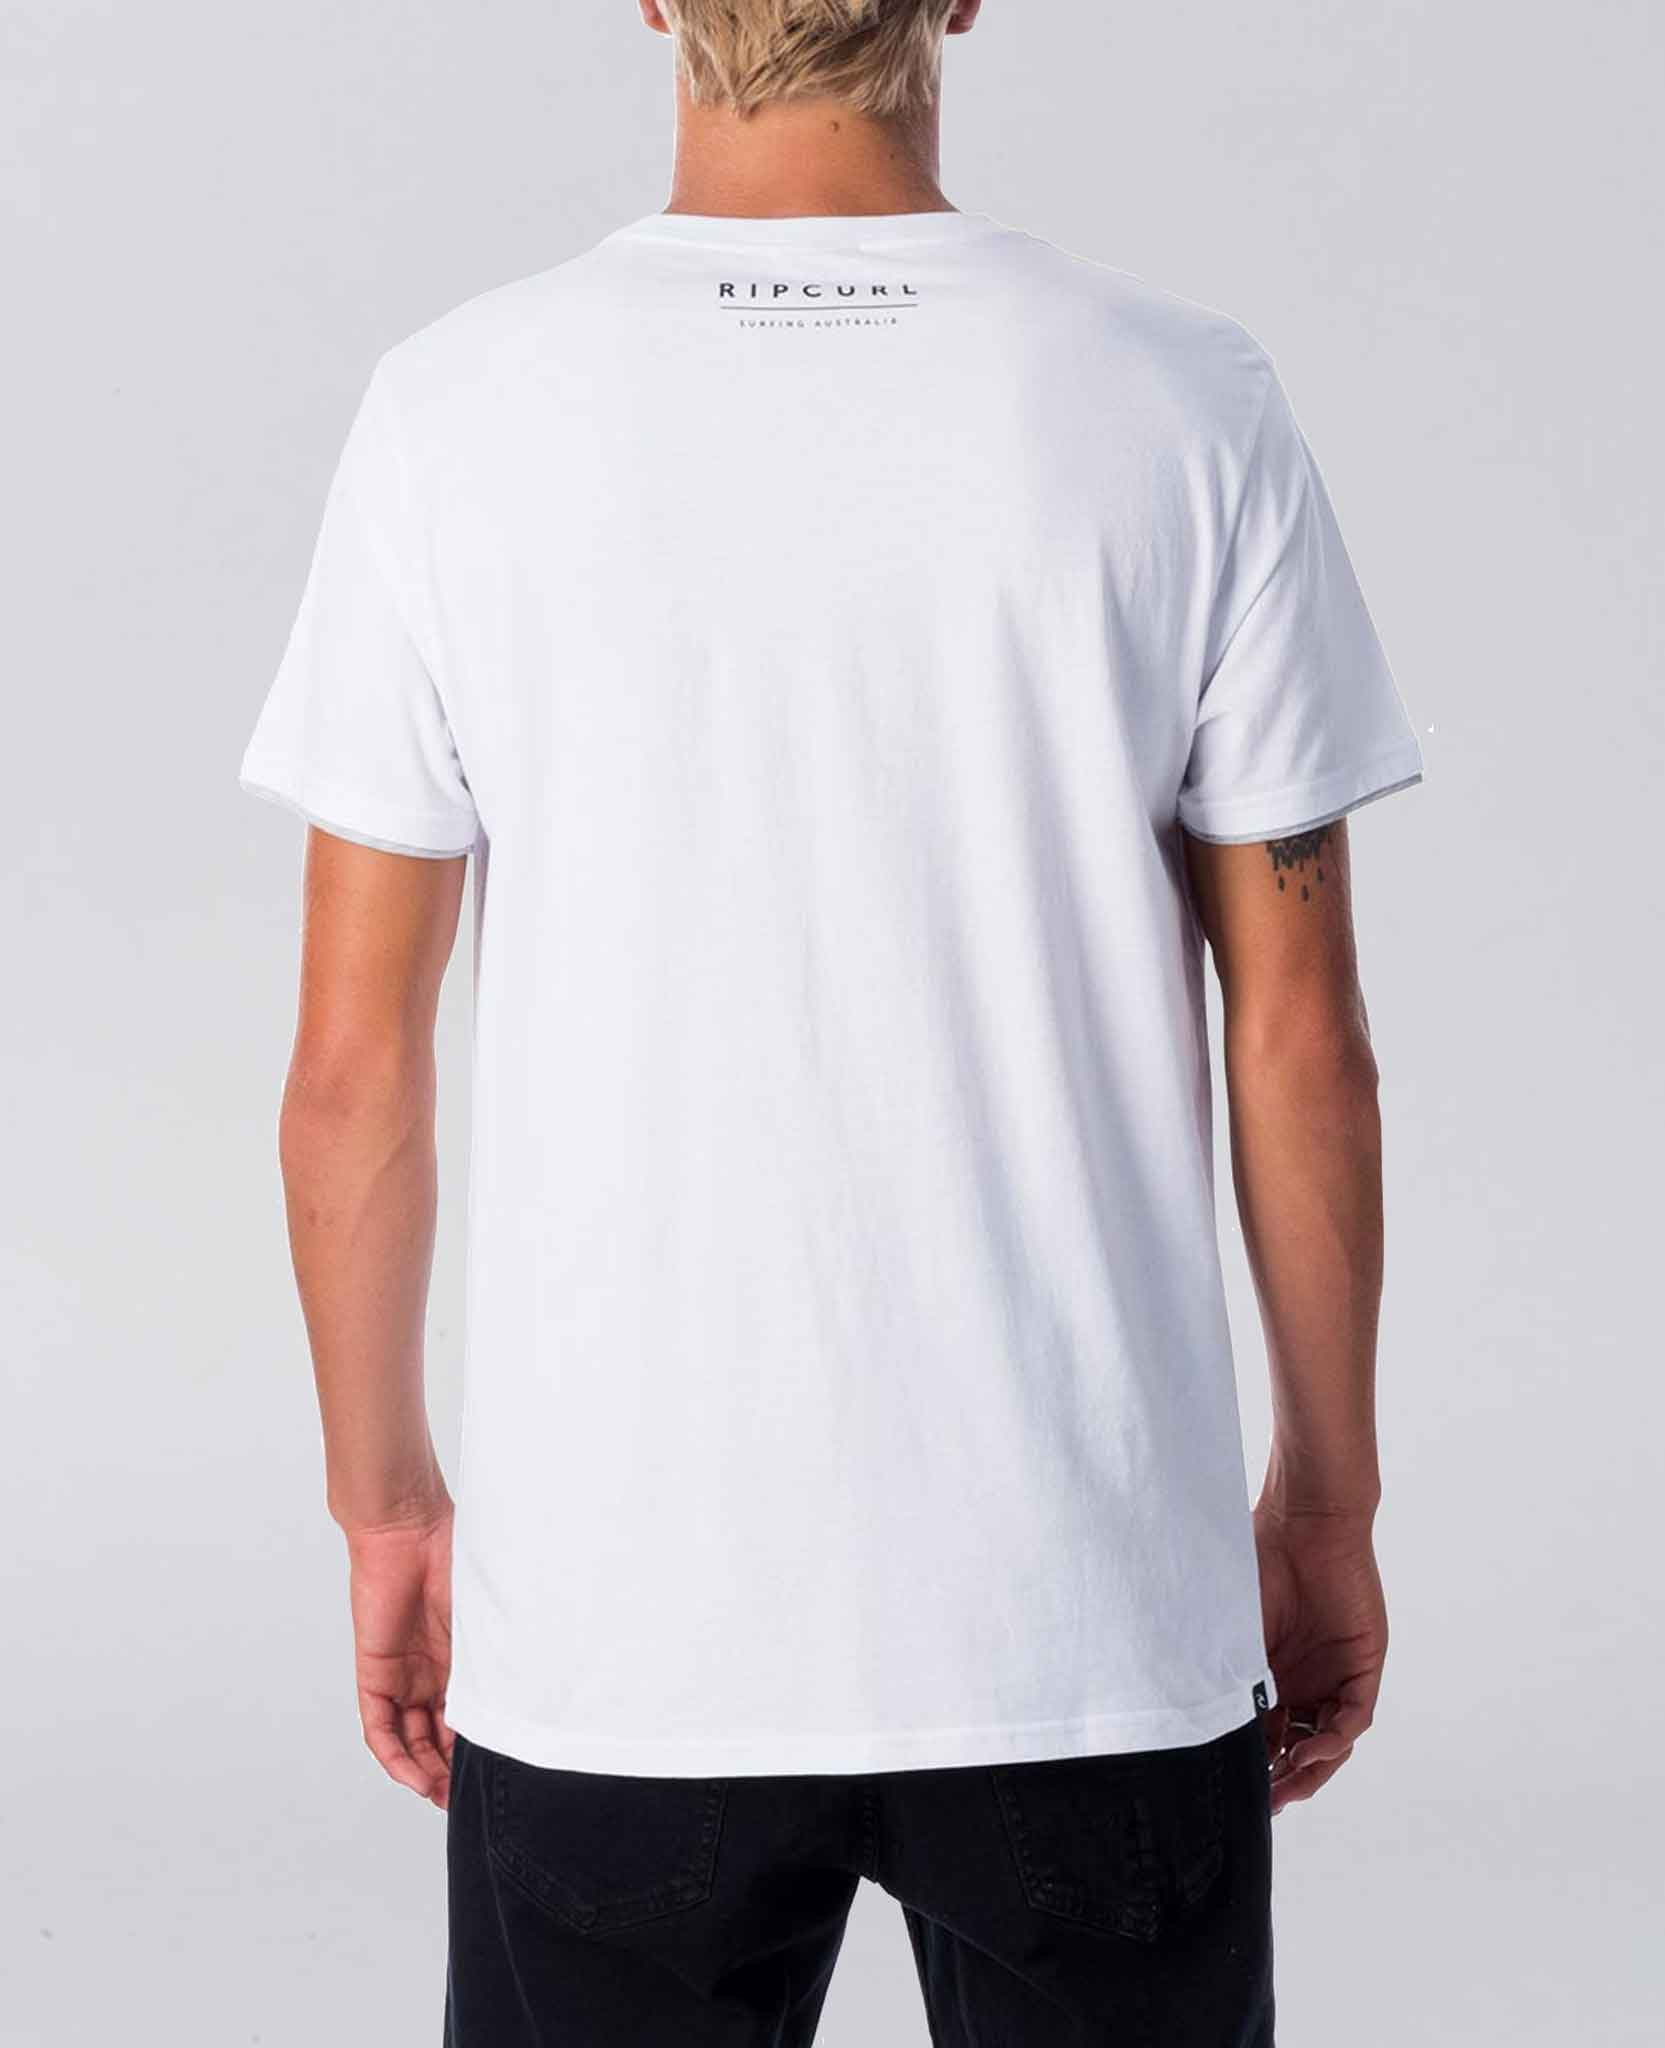 The Classic Tipper Tee